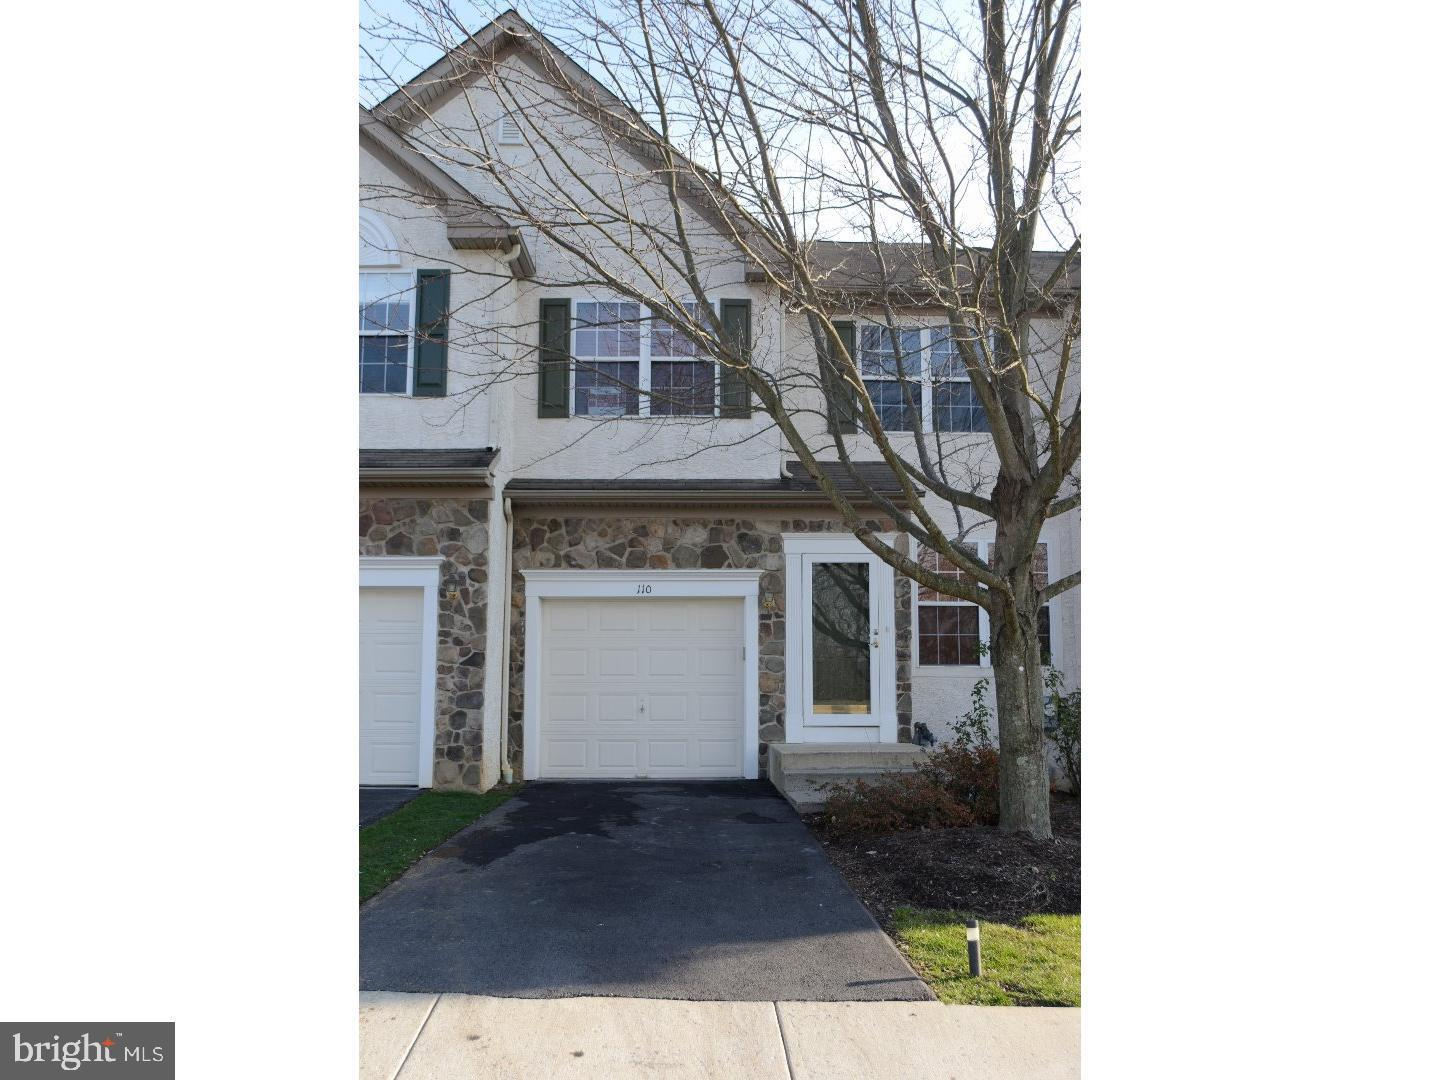 110 Mountain View Drive West Chester, PA 19380